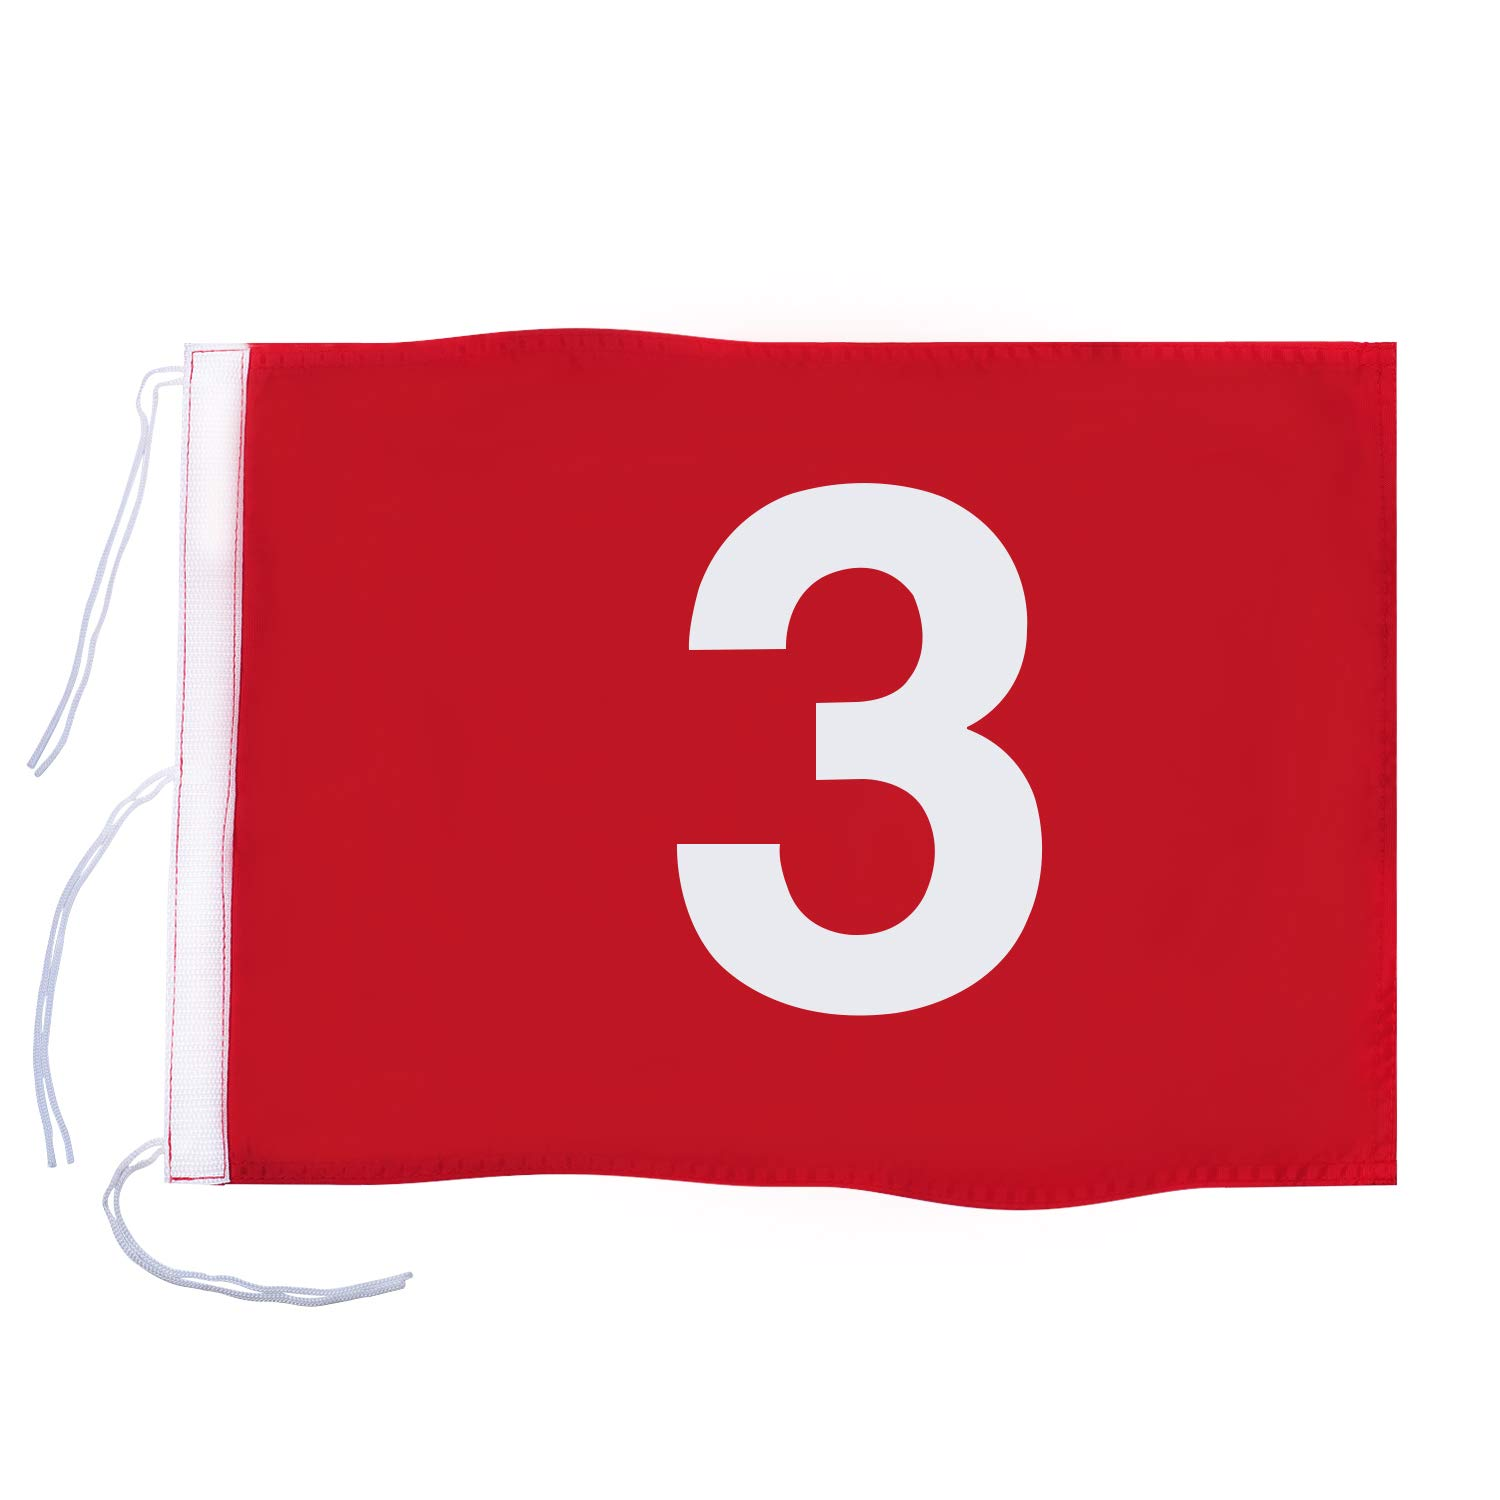 KINGTOP Numbered Golf Flag with Secure Strings, 13'' L x 20'' W, 420D Nylon, Red 3 by KINGTOP